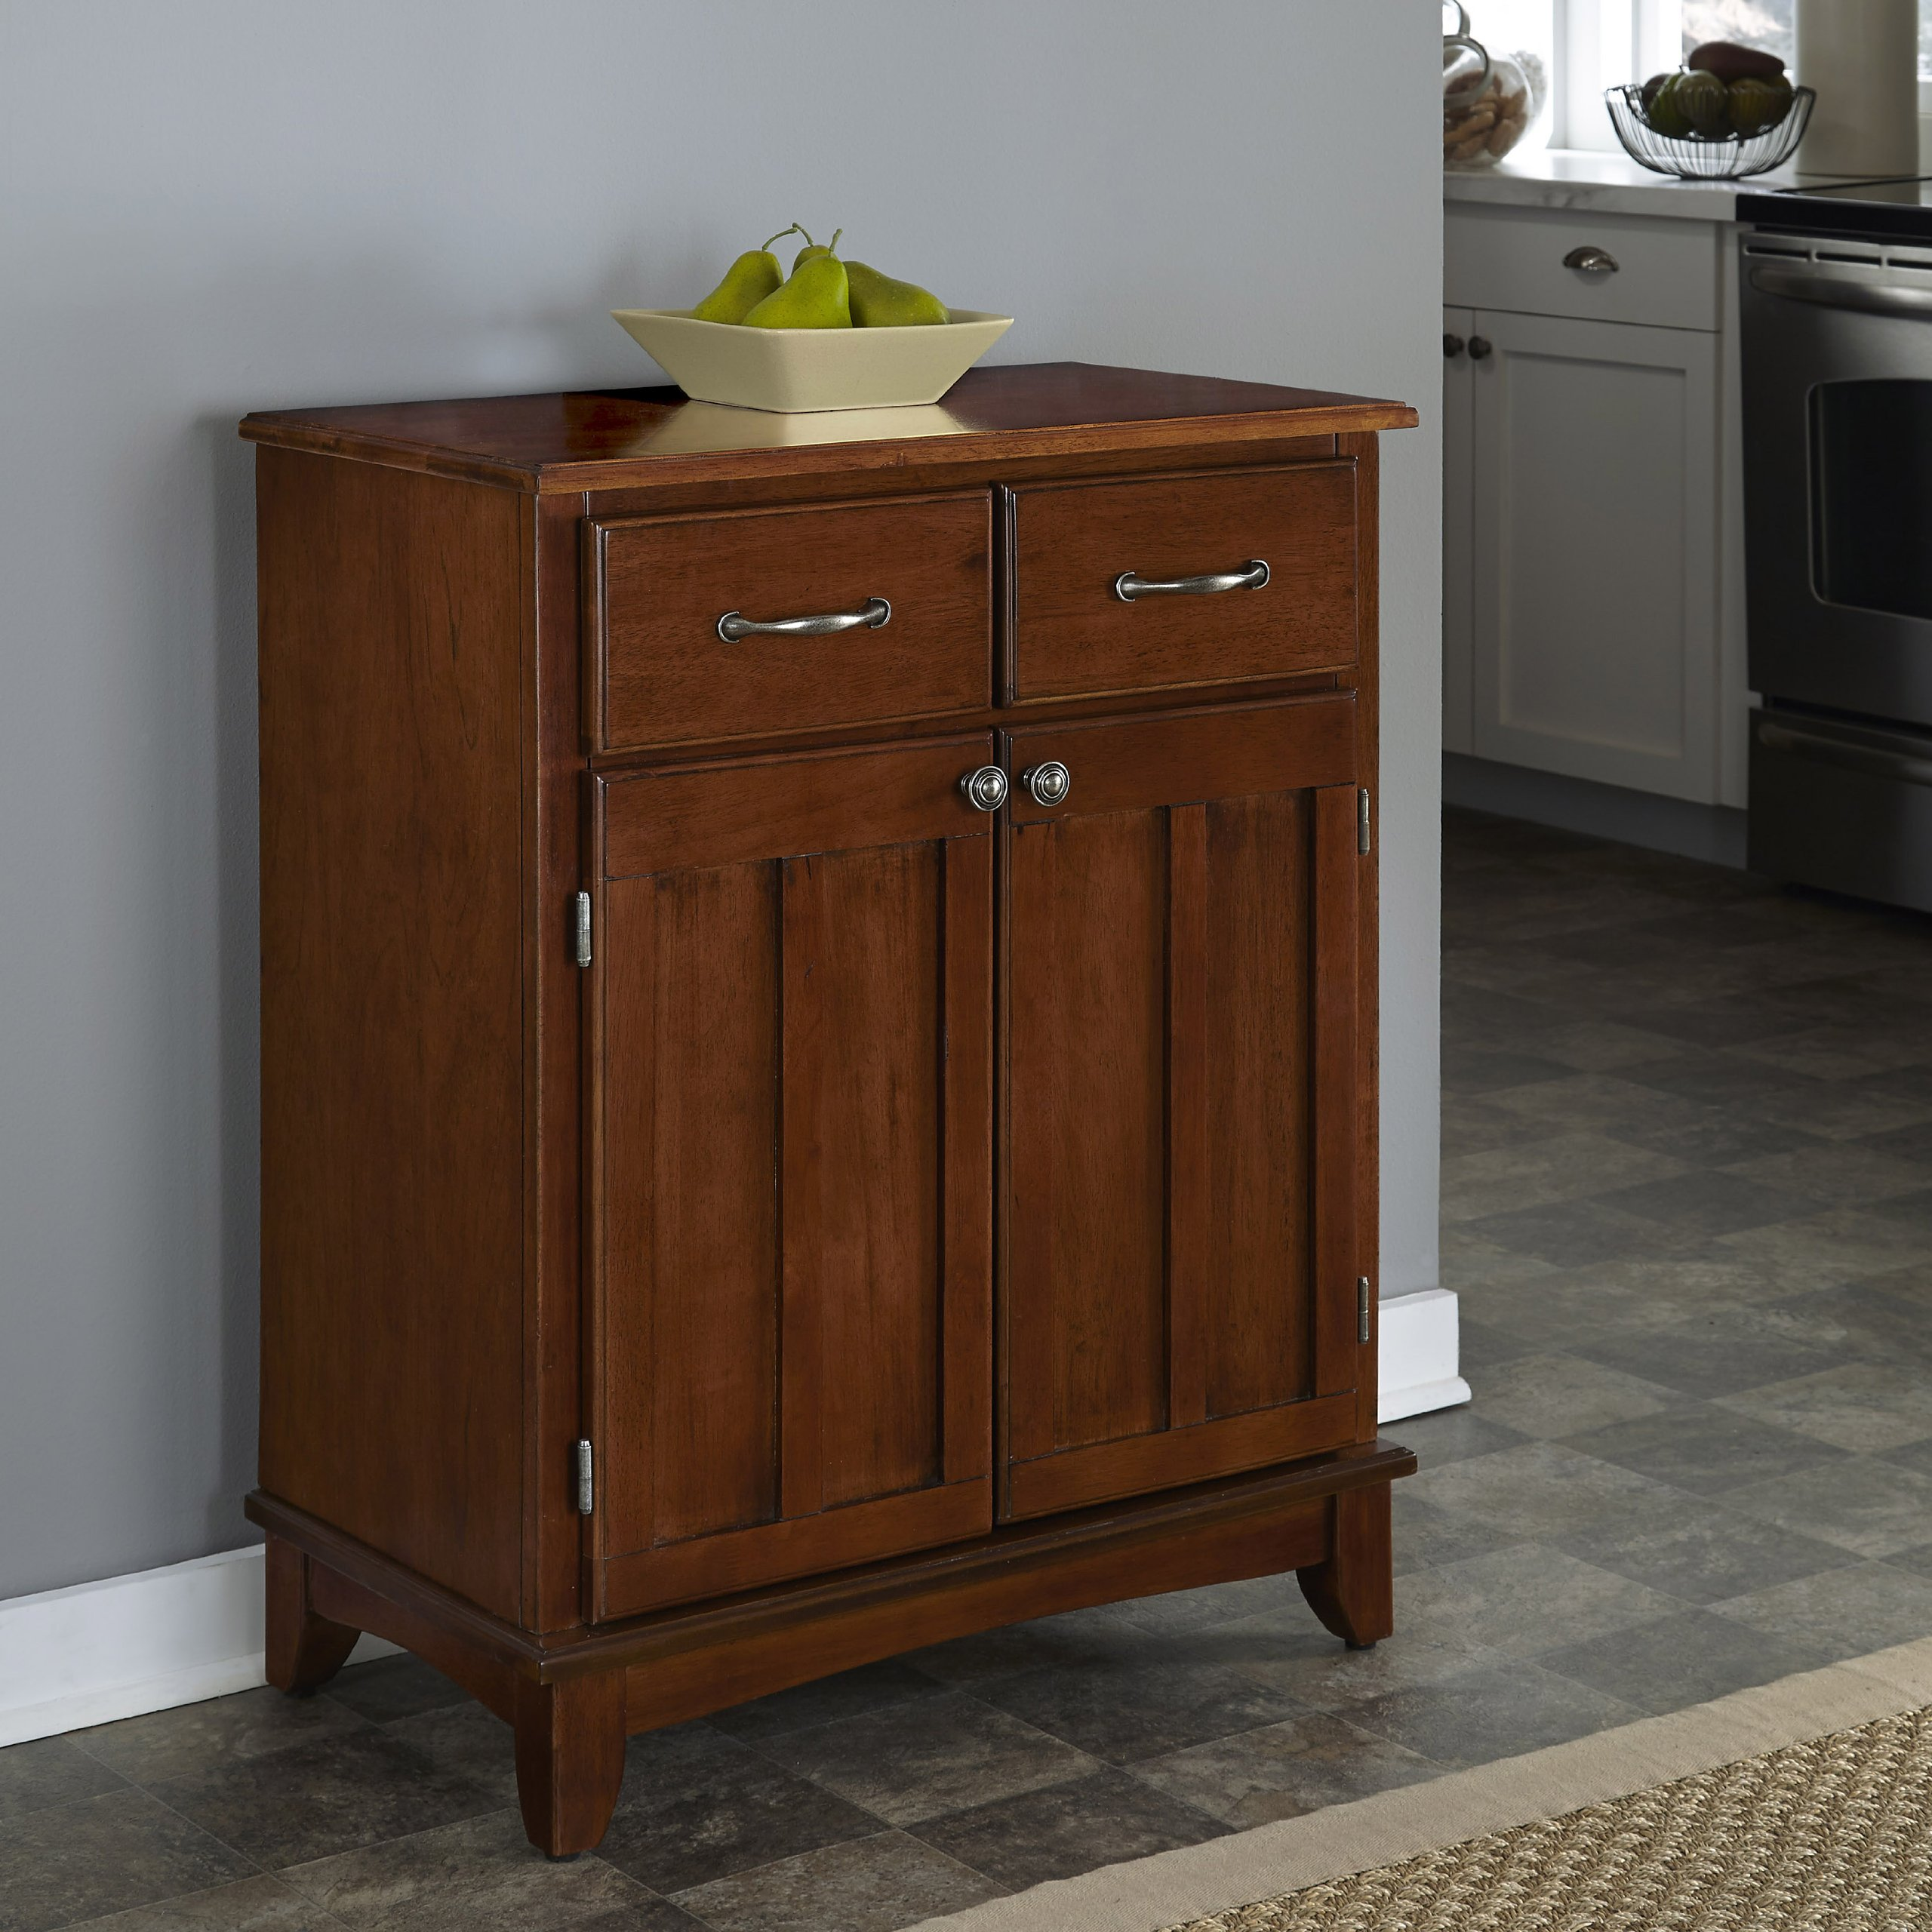 Home Styles 5001-0072 5001 Series with Medium Cherry Wood Top Buffet, Medium Cherry, 29-1/4-Inch by Home Styles (Image #2)